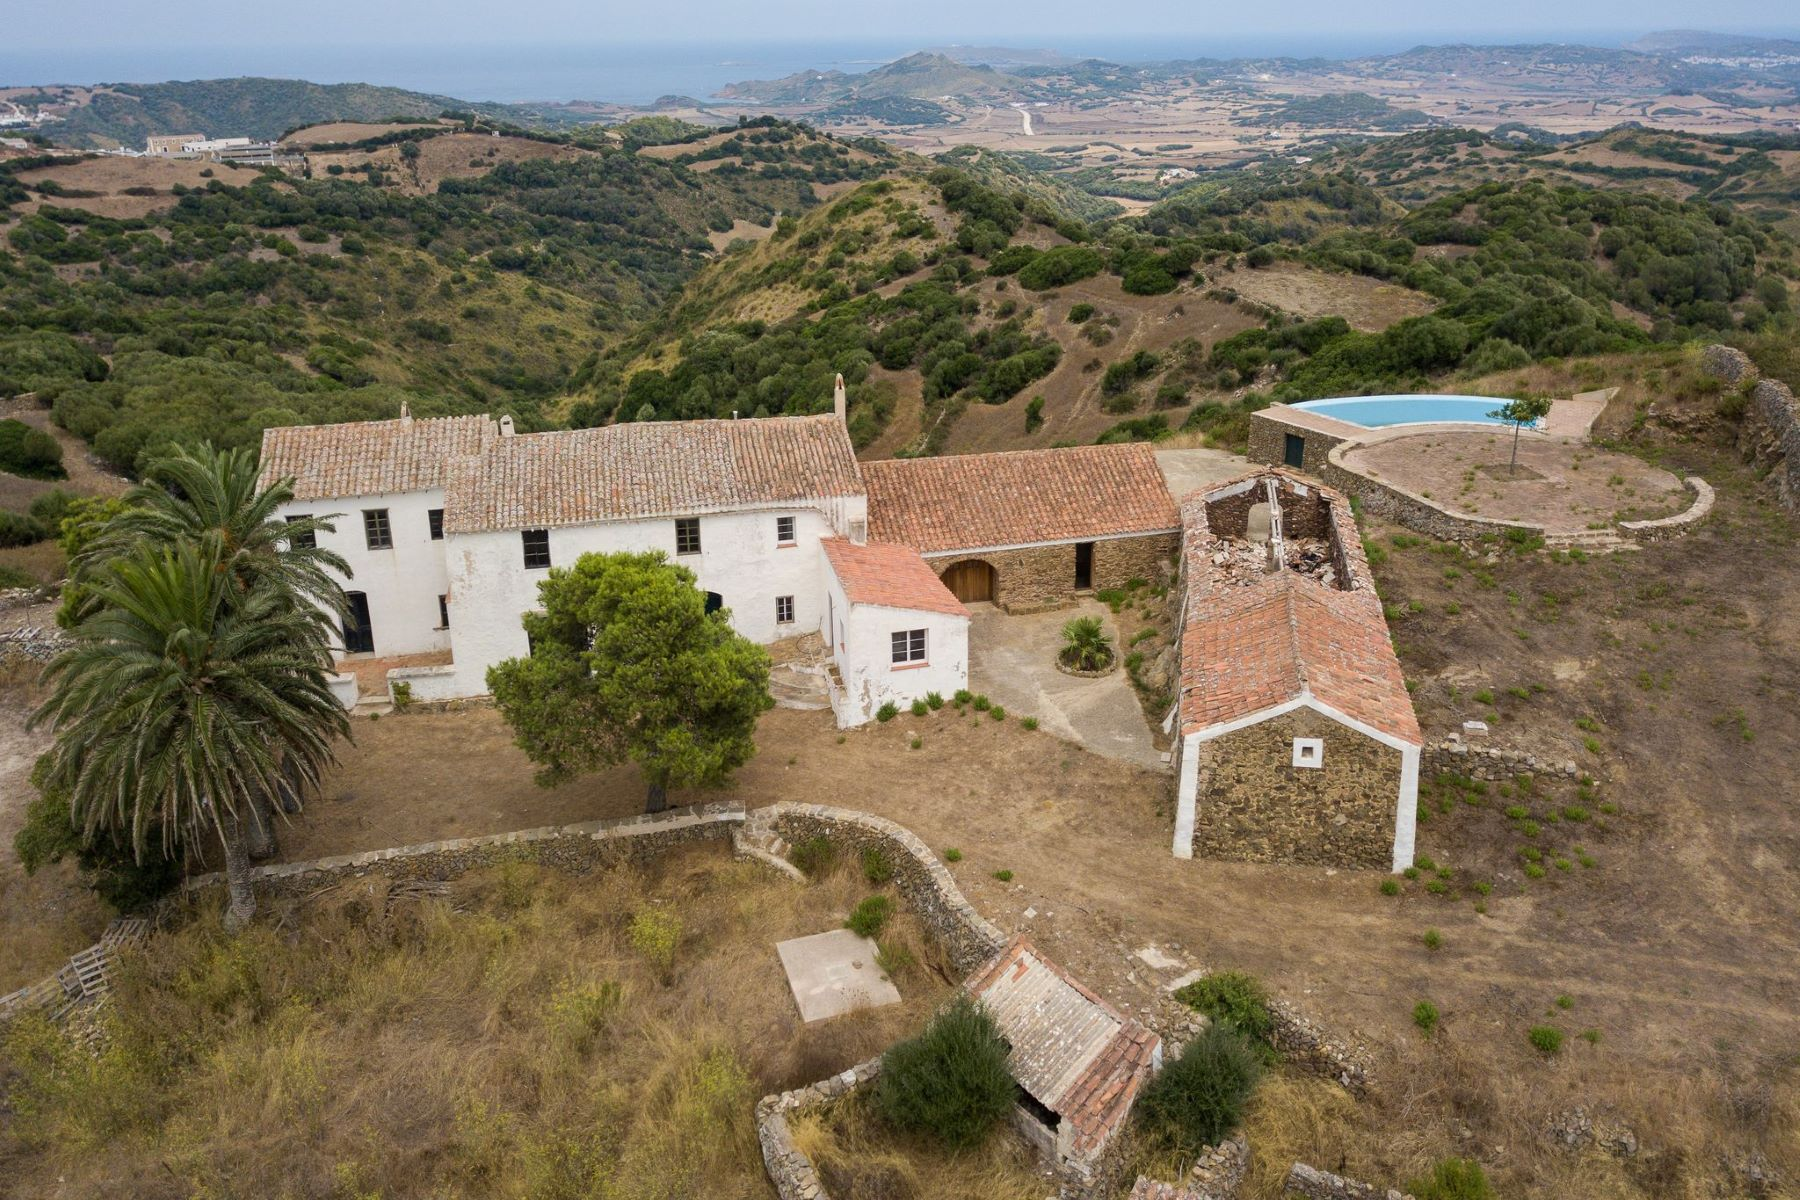 Single Family Home for Sale at Spectacular 19th century property Menorca, Menorca Spain